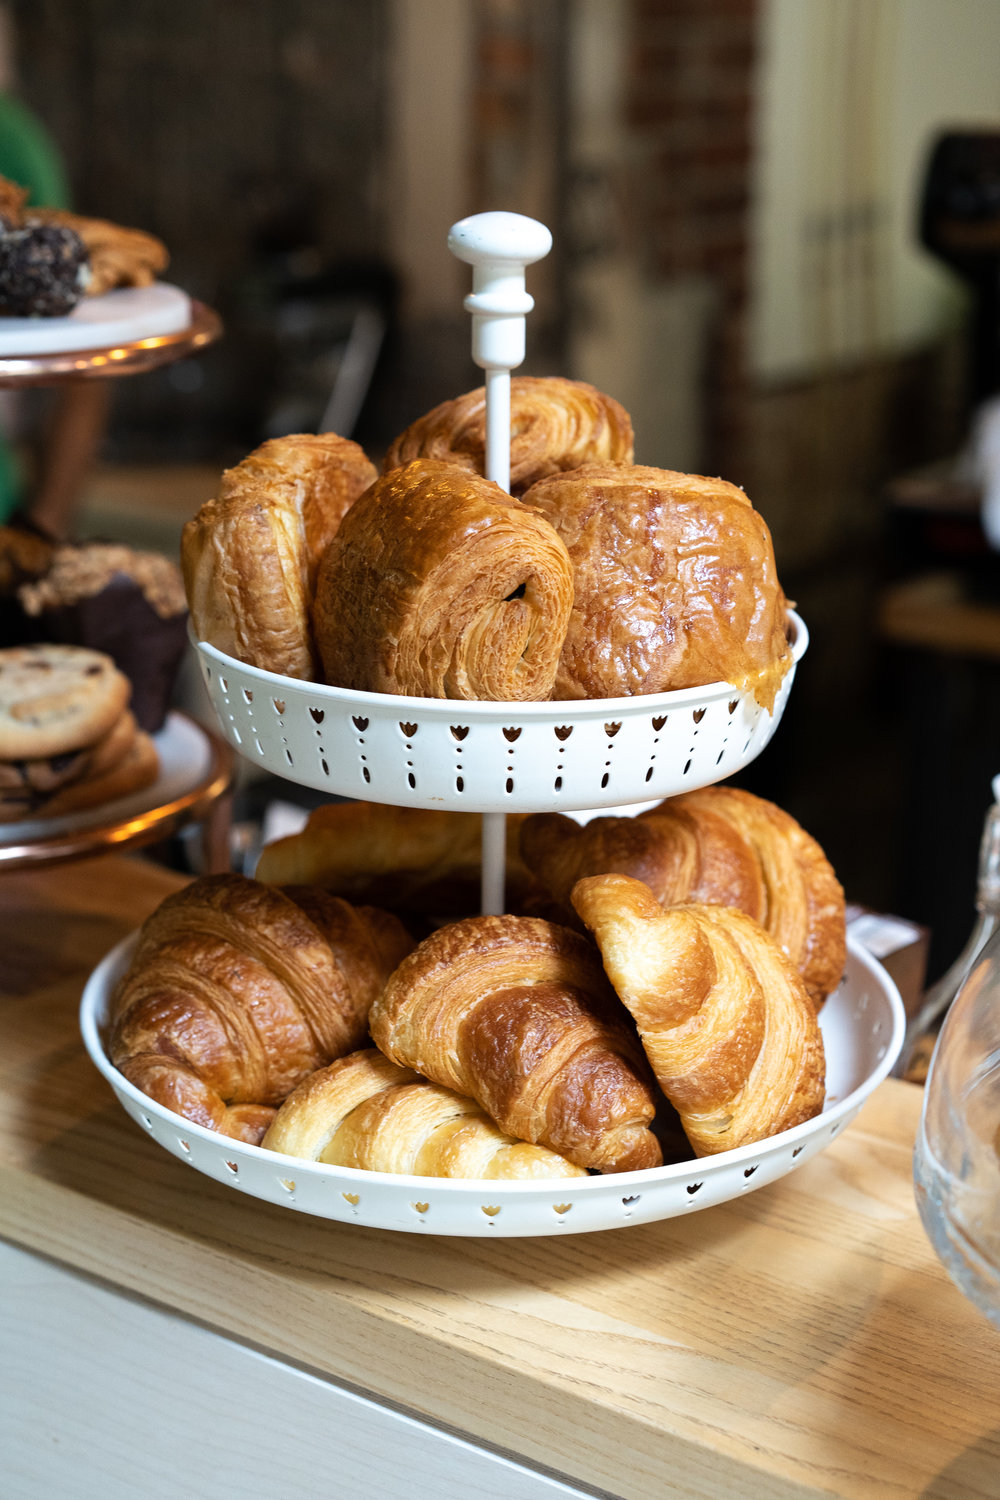 Delicious pastries for breakfast or a midday snack.